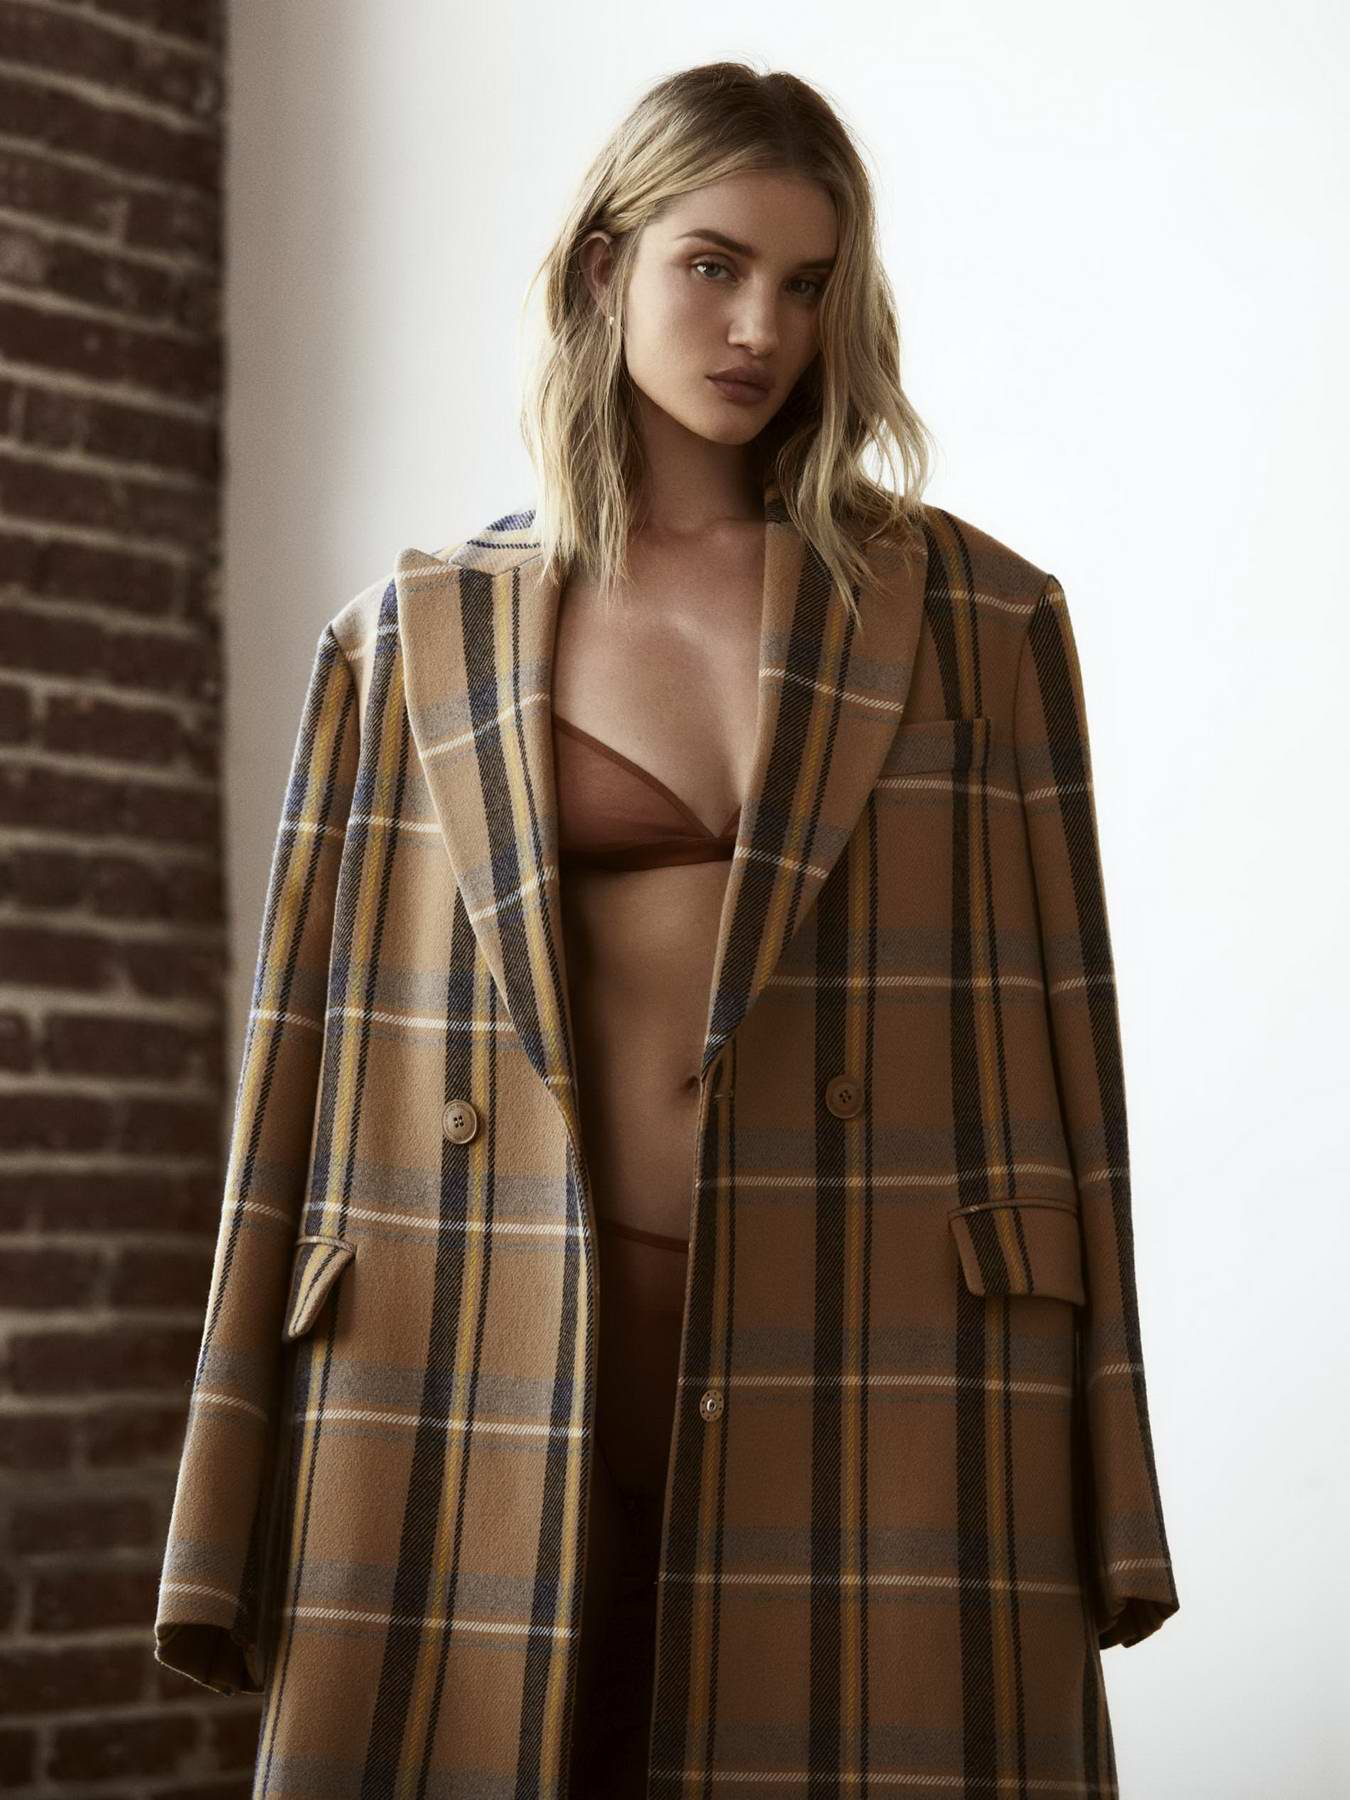 Rosie Huntington-Whiteley features in PORTER Edit - August 2018